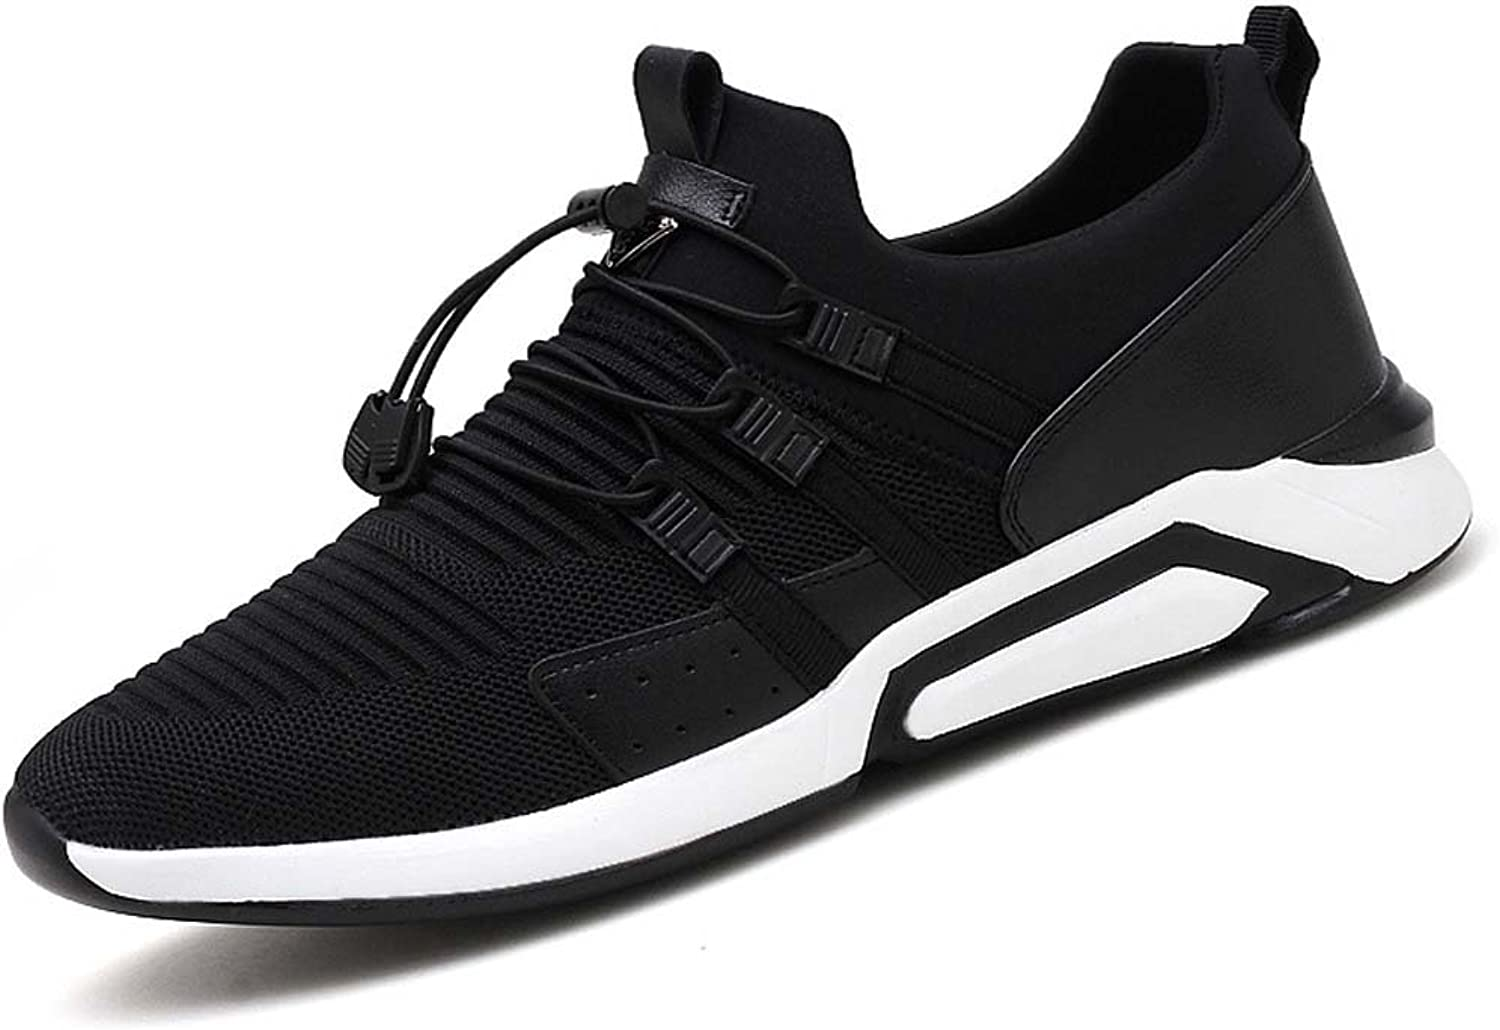 Mens Casual Running shoes Walking Sneakers Workout Athletic shoes For